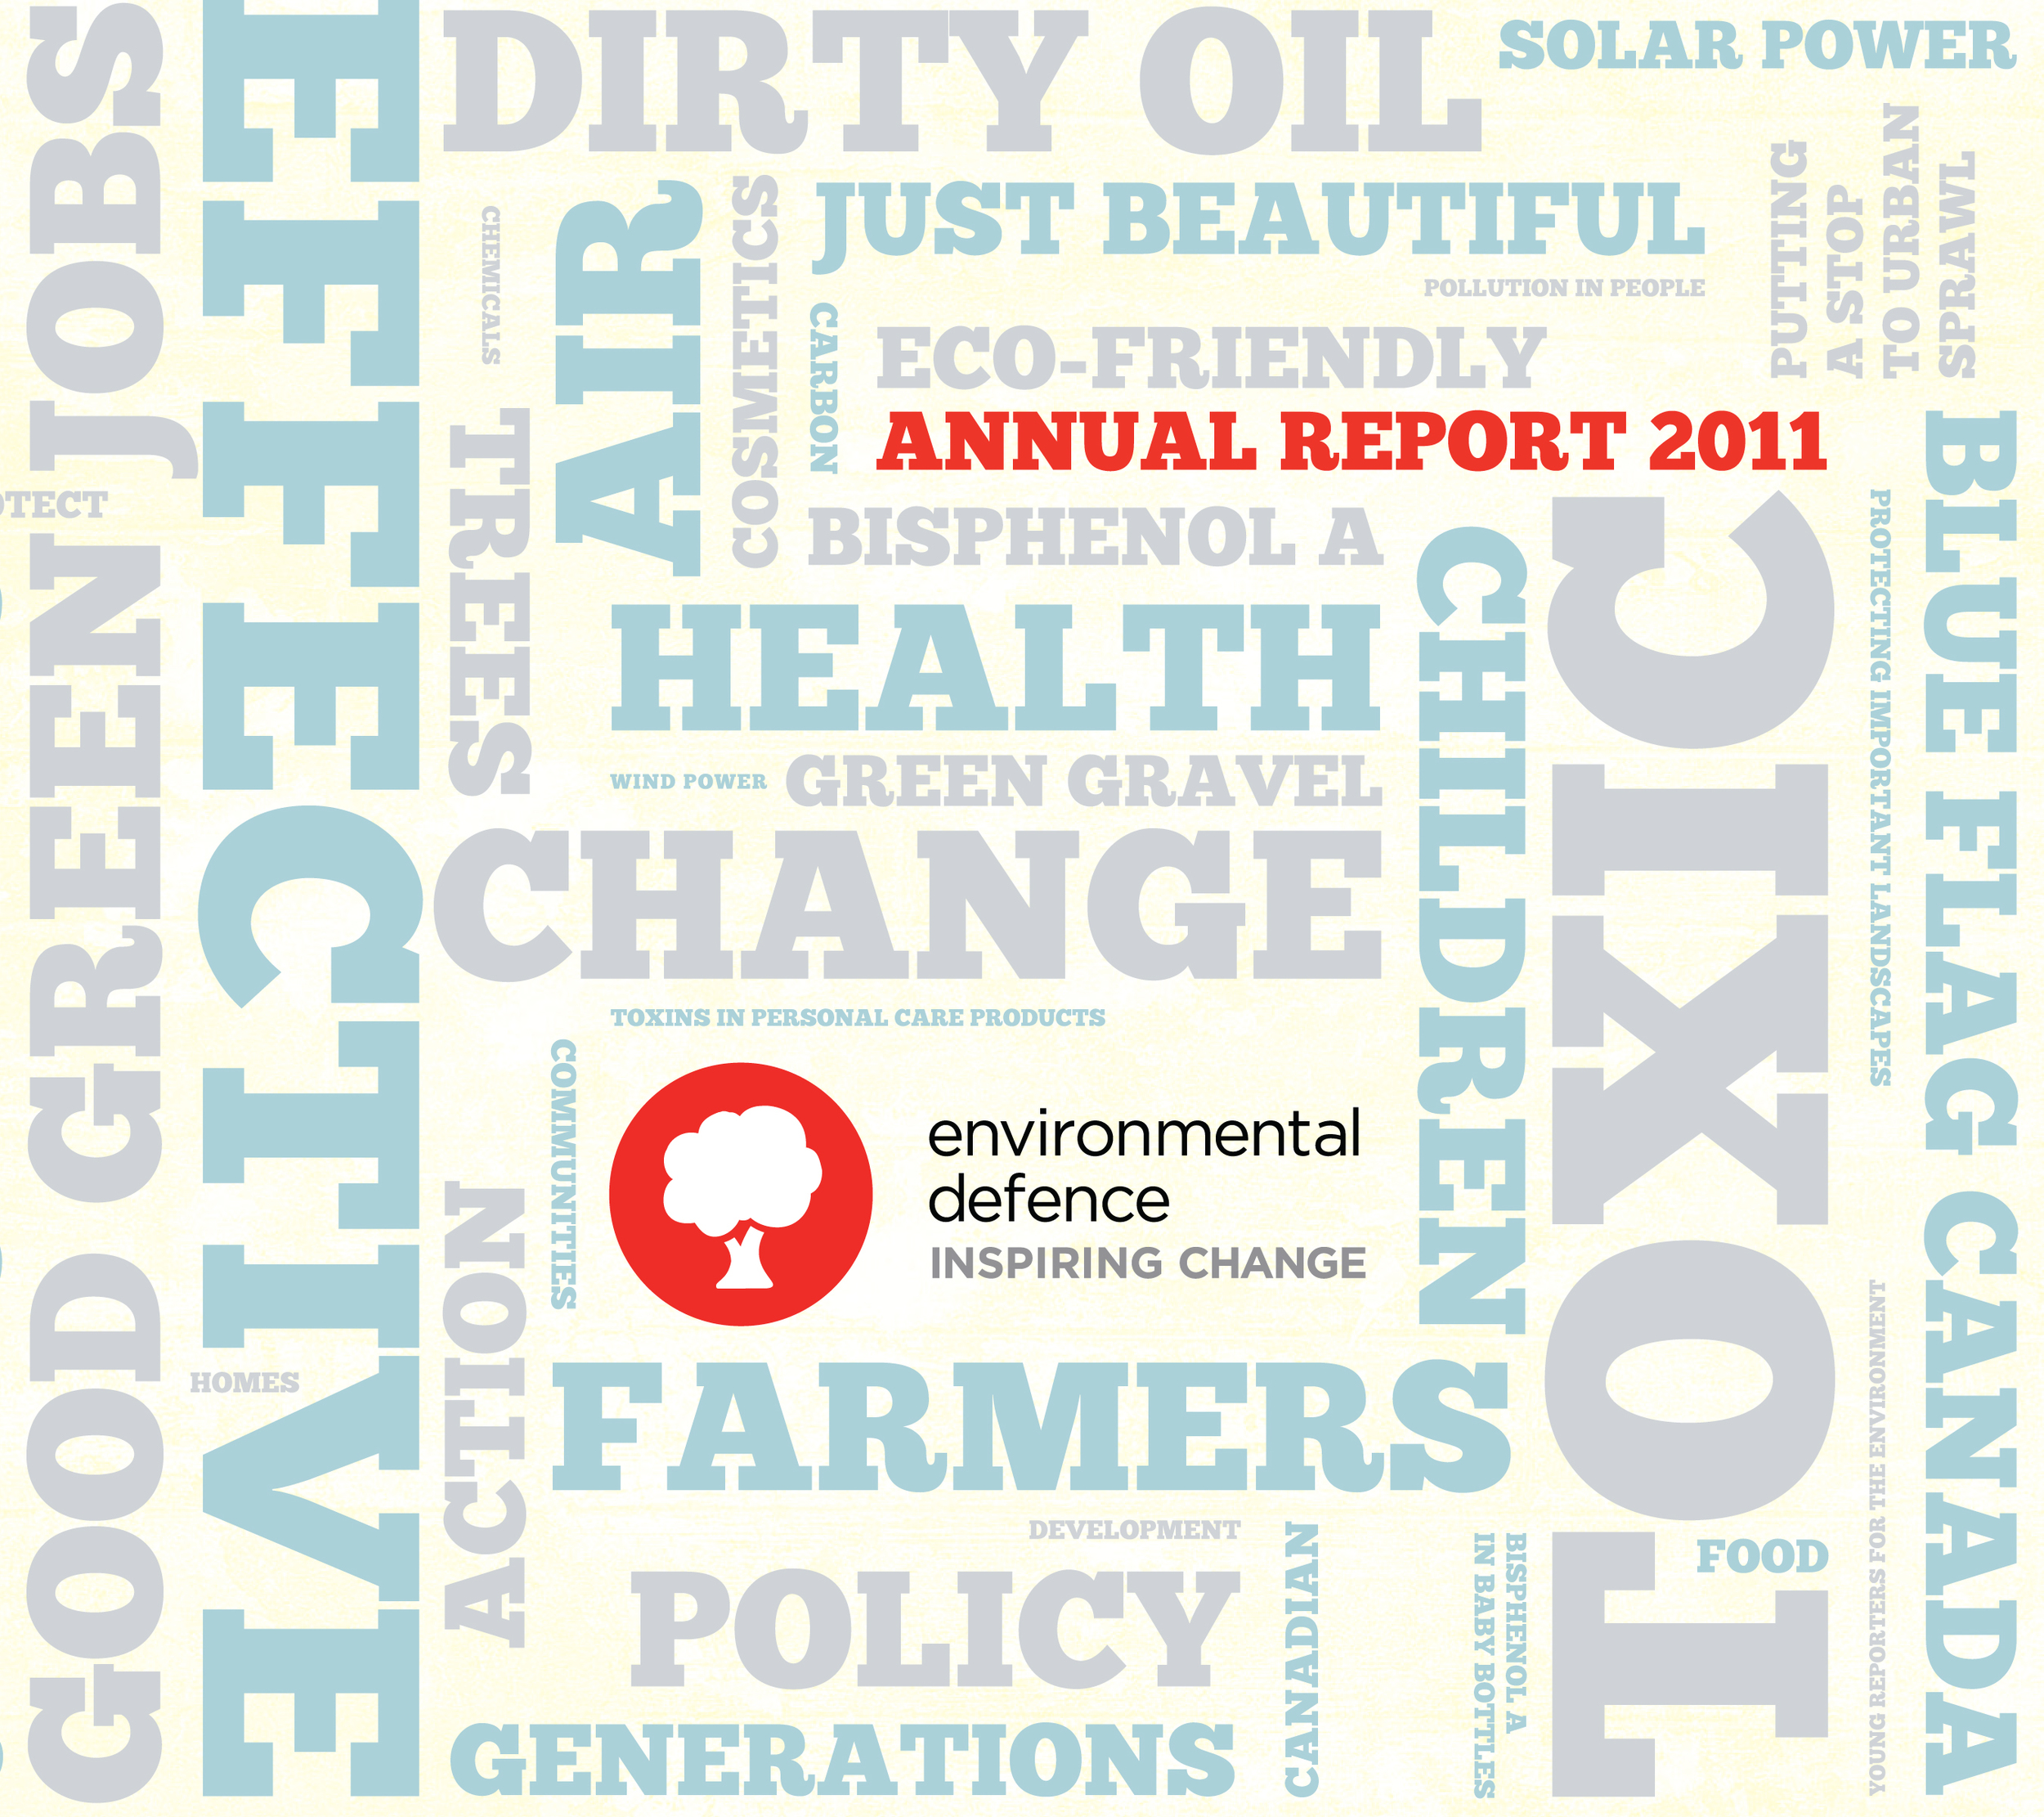 ED_AnnualReport2011_COVER.jpg